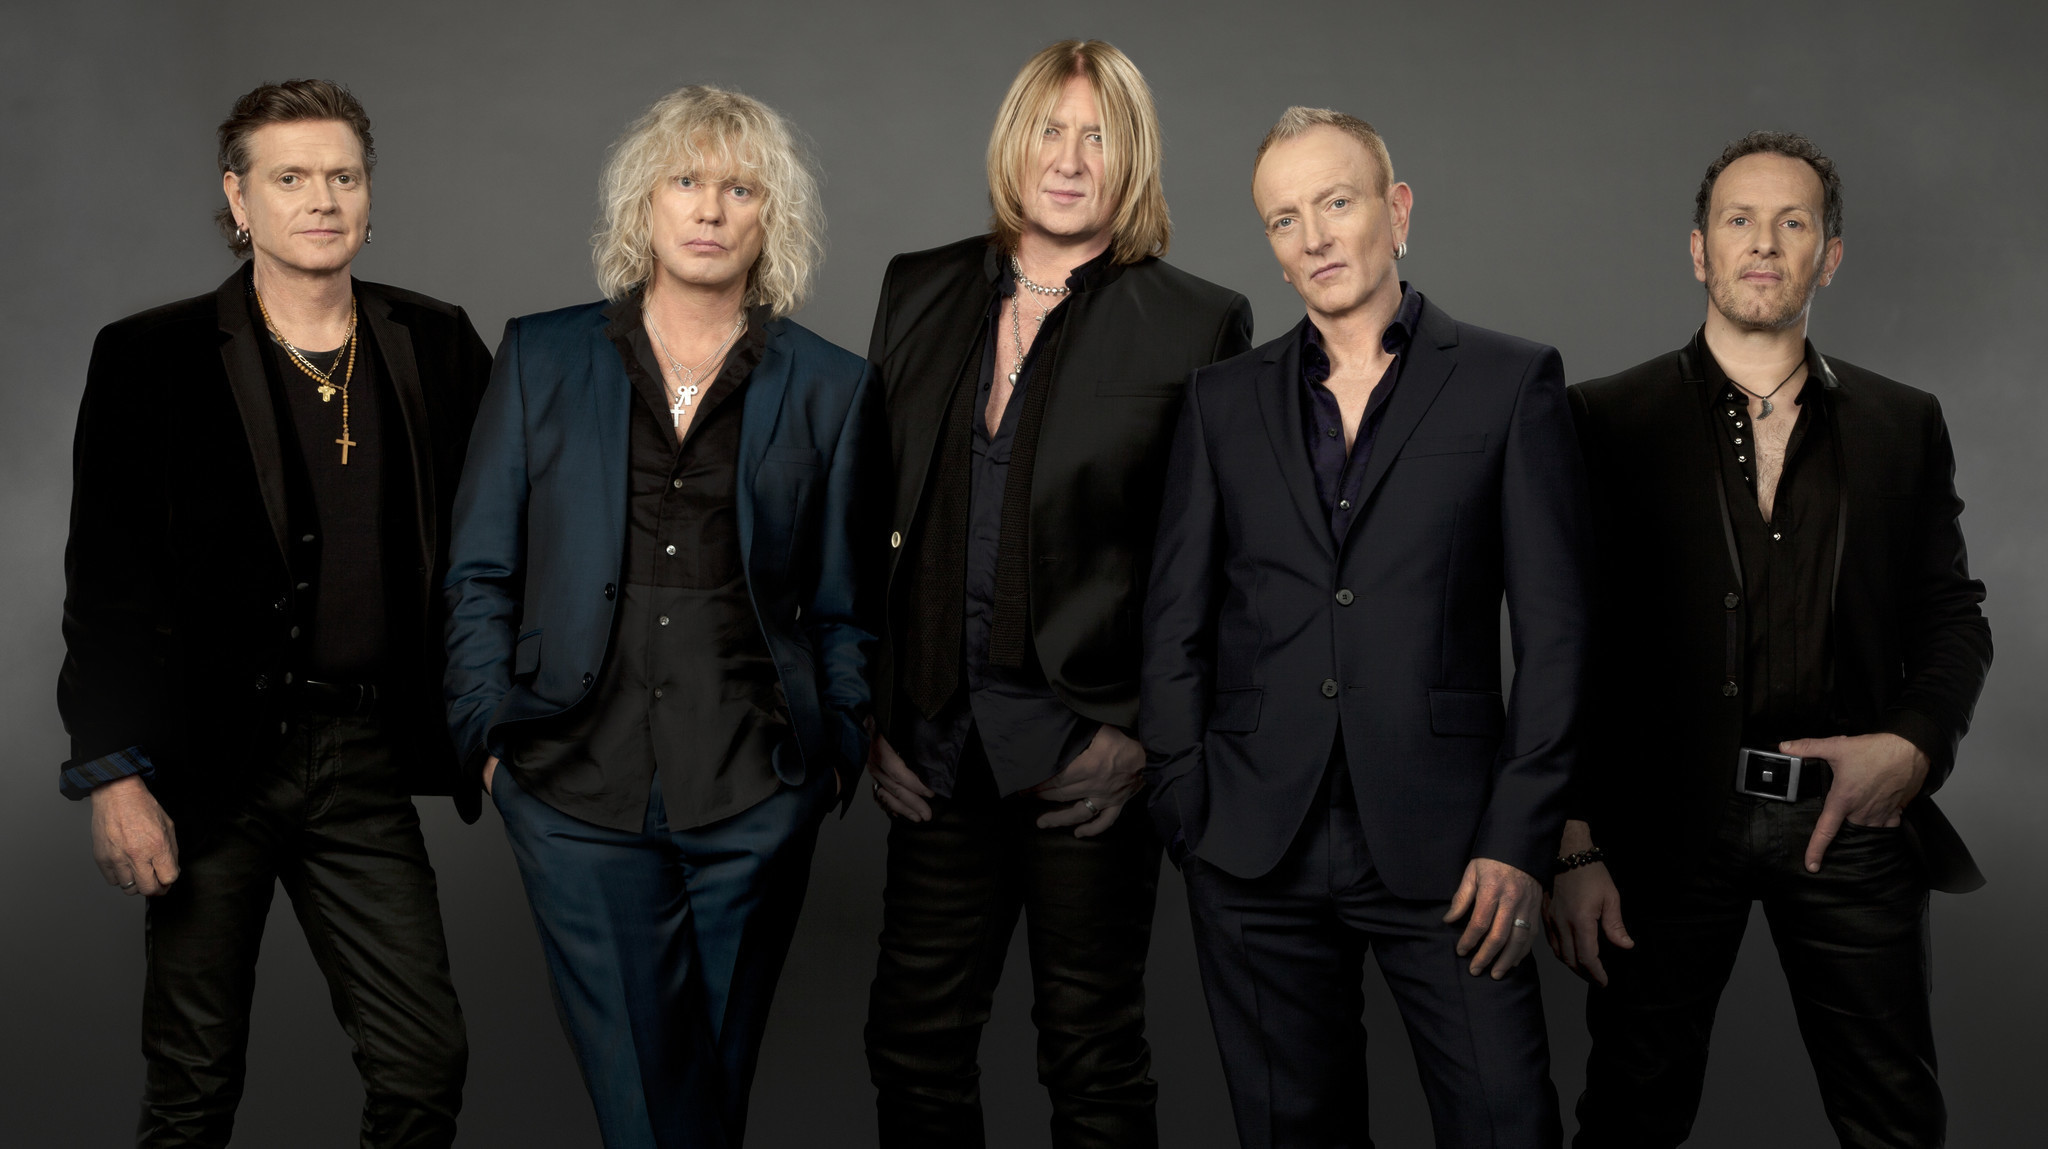 Def Leppard Announces 2017 Tour With Poison And Tesla